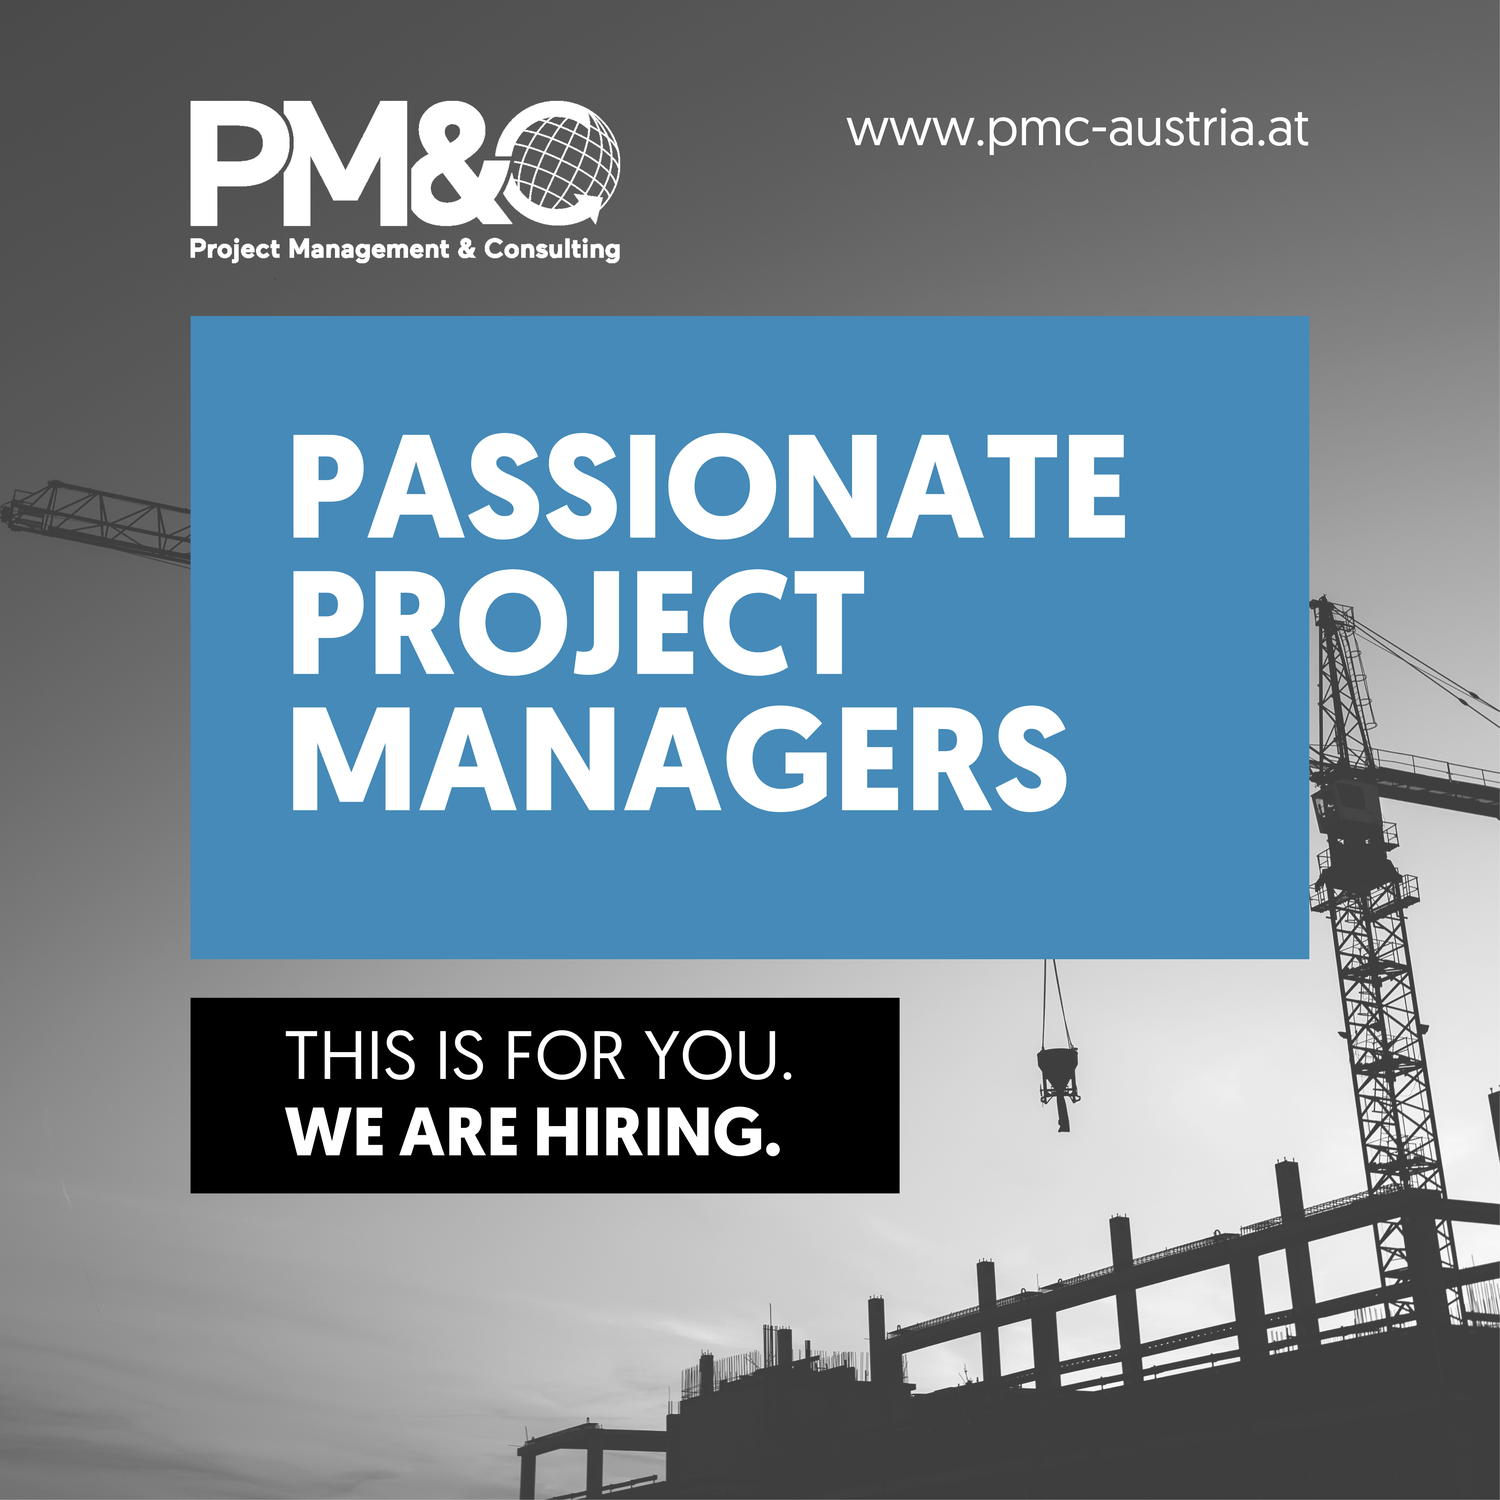 Passionate project managers –  This is for you. We are hiring.